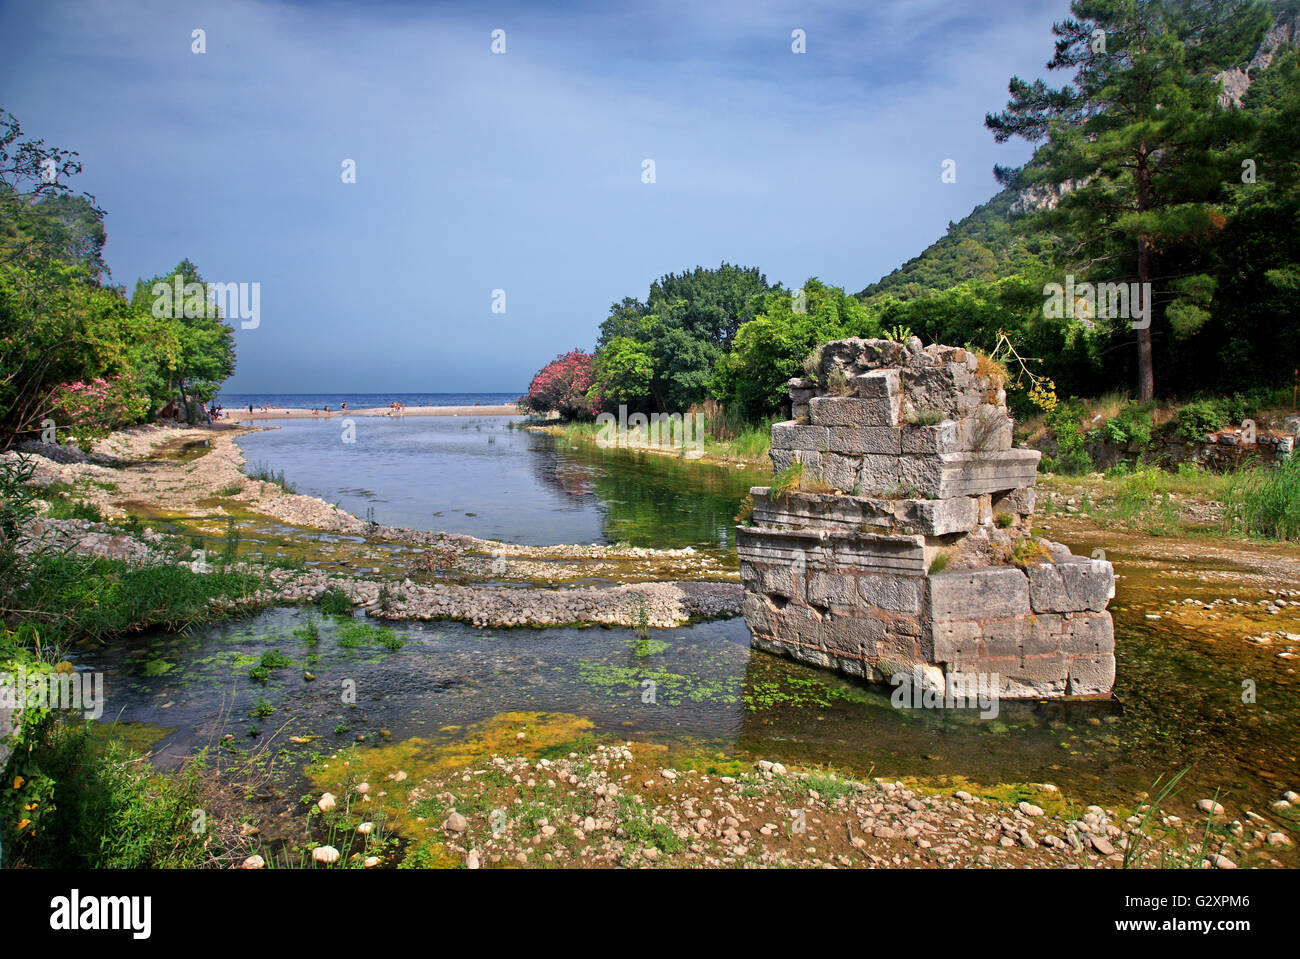 Ruins of an ancient (Roman) bridge at the archaeological site of Olympos, Lycia, Antalya province, Turkey. - Stock Image